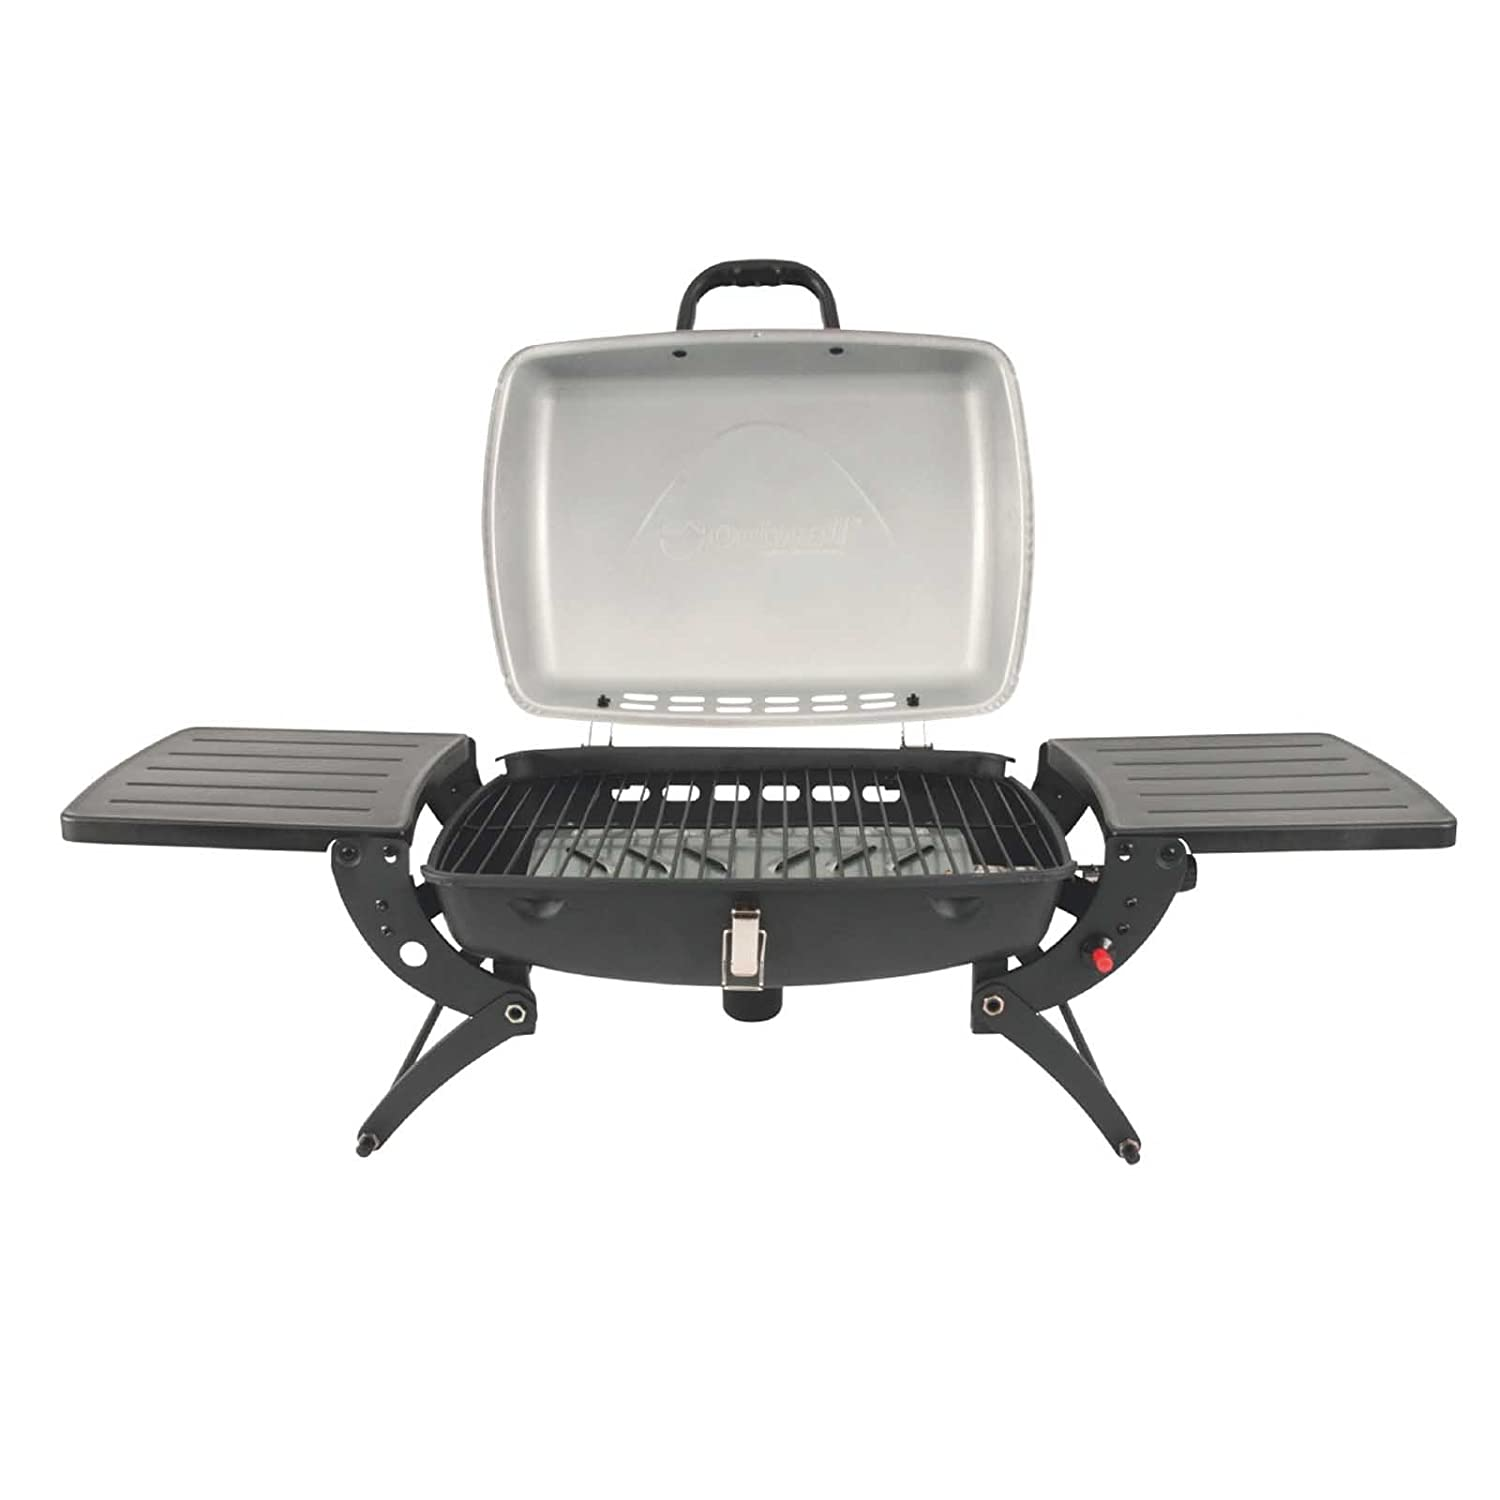 Outwell Roast Gas BBQ with Side table Stove + Grill - Black, One size 650266